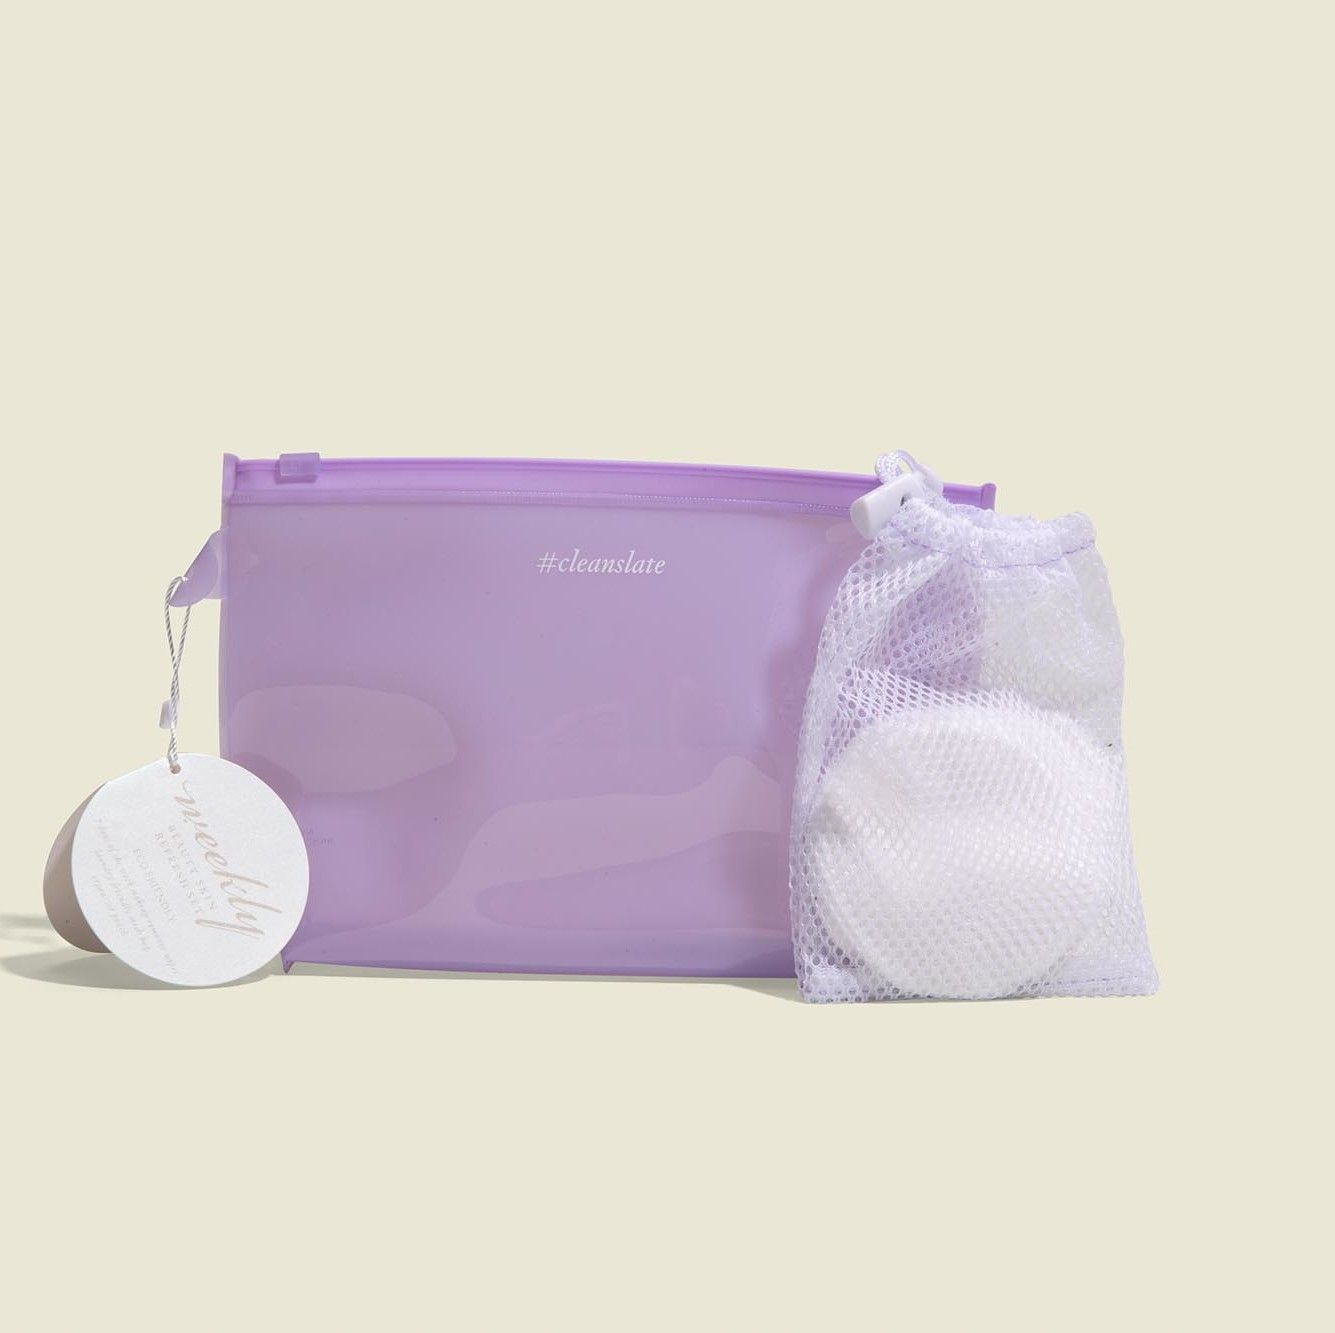 Standing zip pouch with drawstring pouch and makeup pads